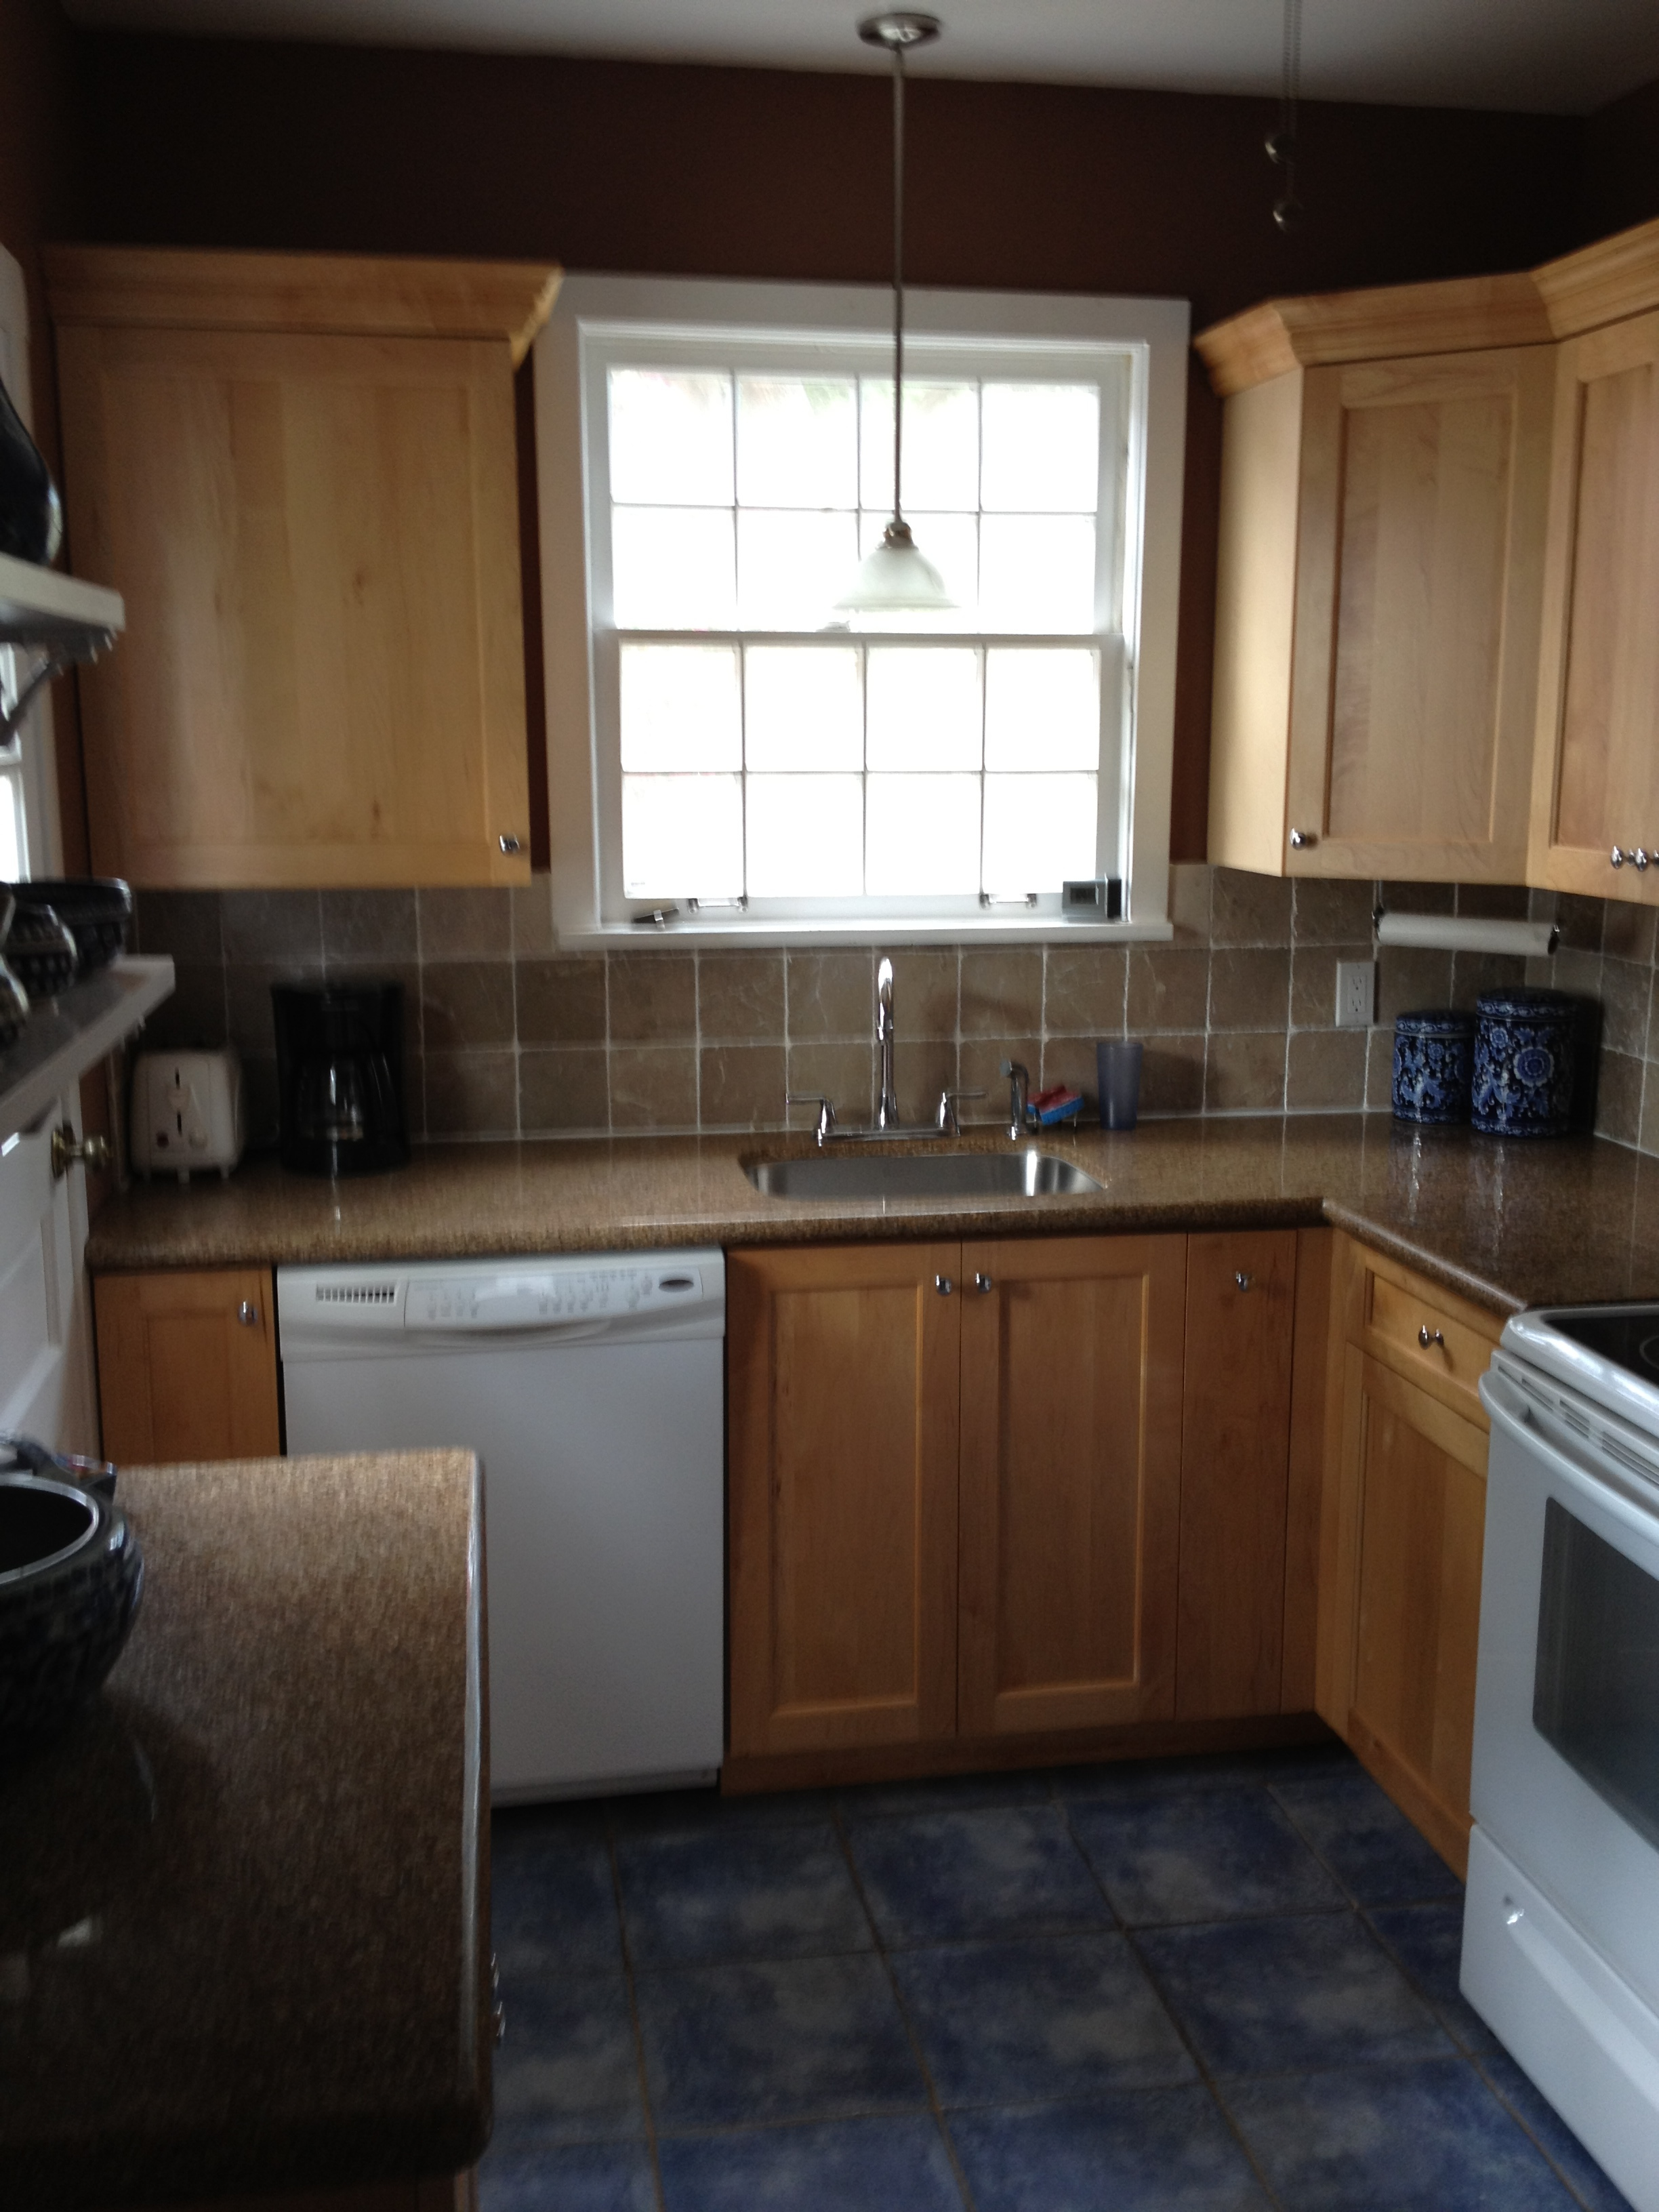 Kitchen: Before. Blue tile, brown speckled countertops, tan backsplash, natural wood cabinets, white appliances, brown walls....this room needed some love!